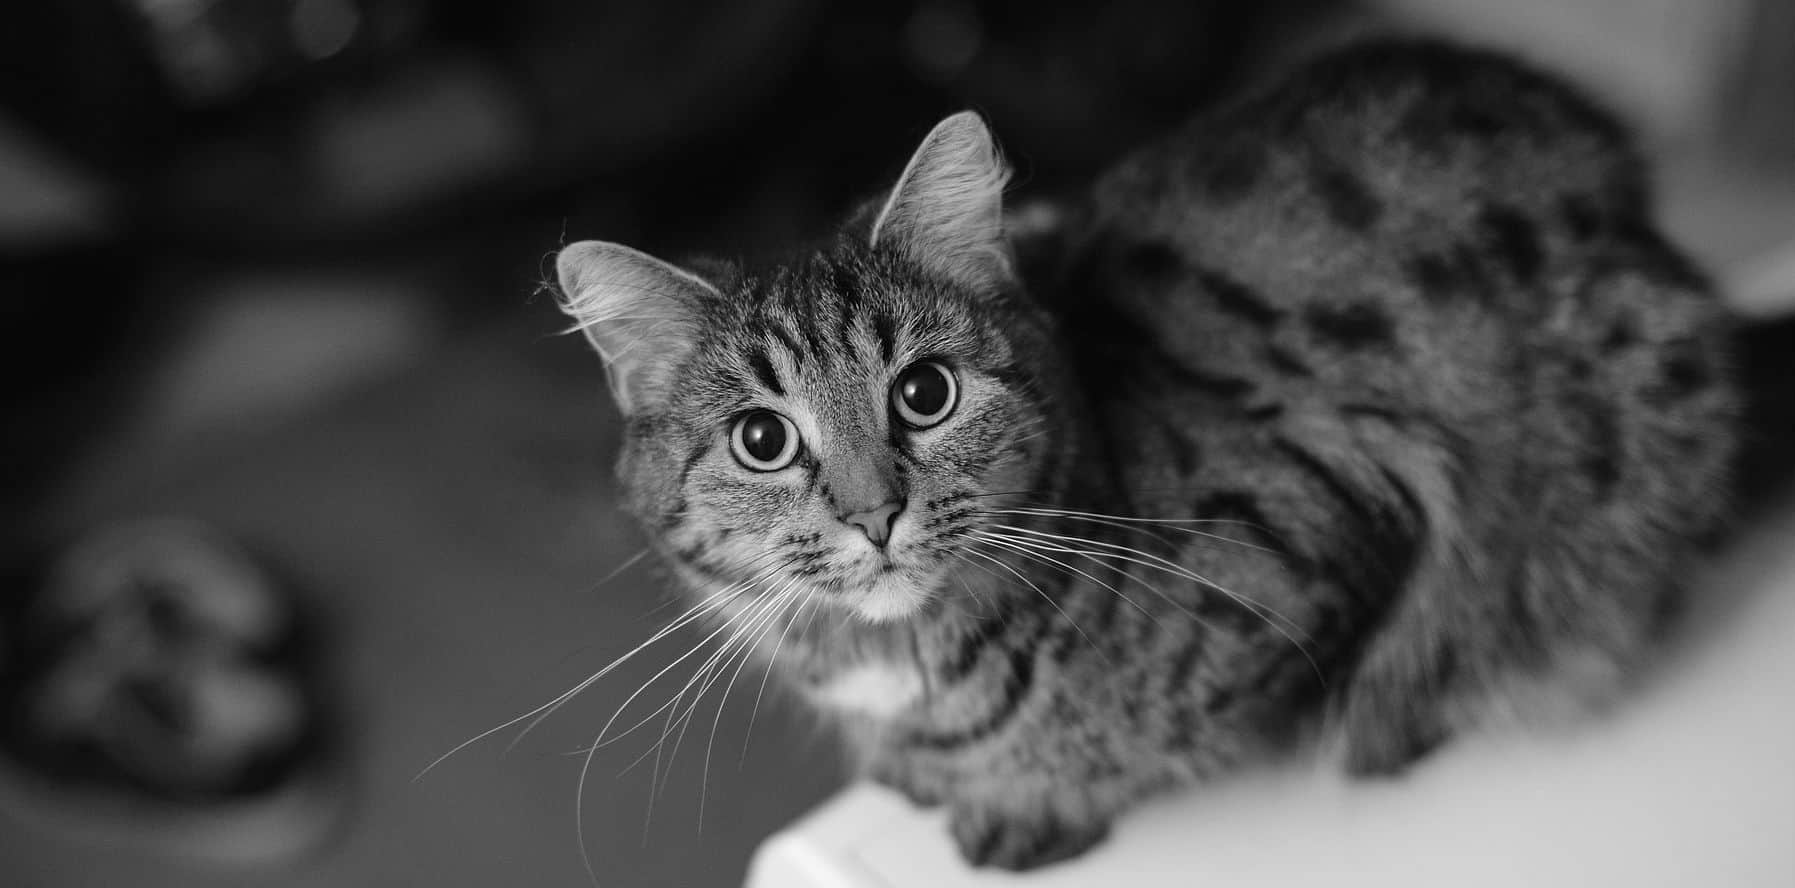 What should I know before adopting an FIV positive cat?